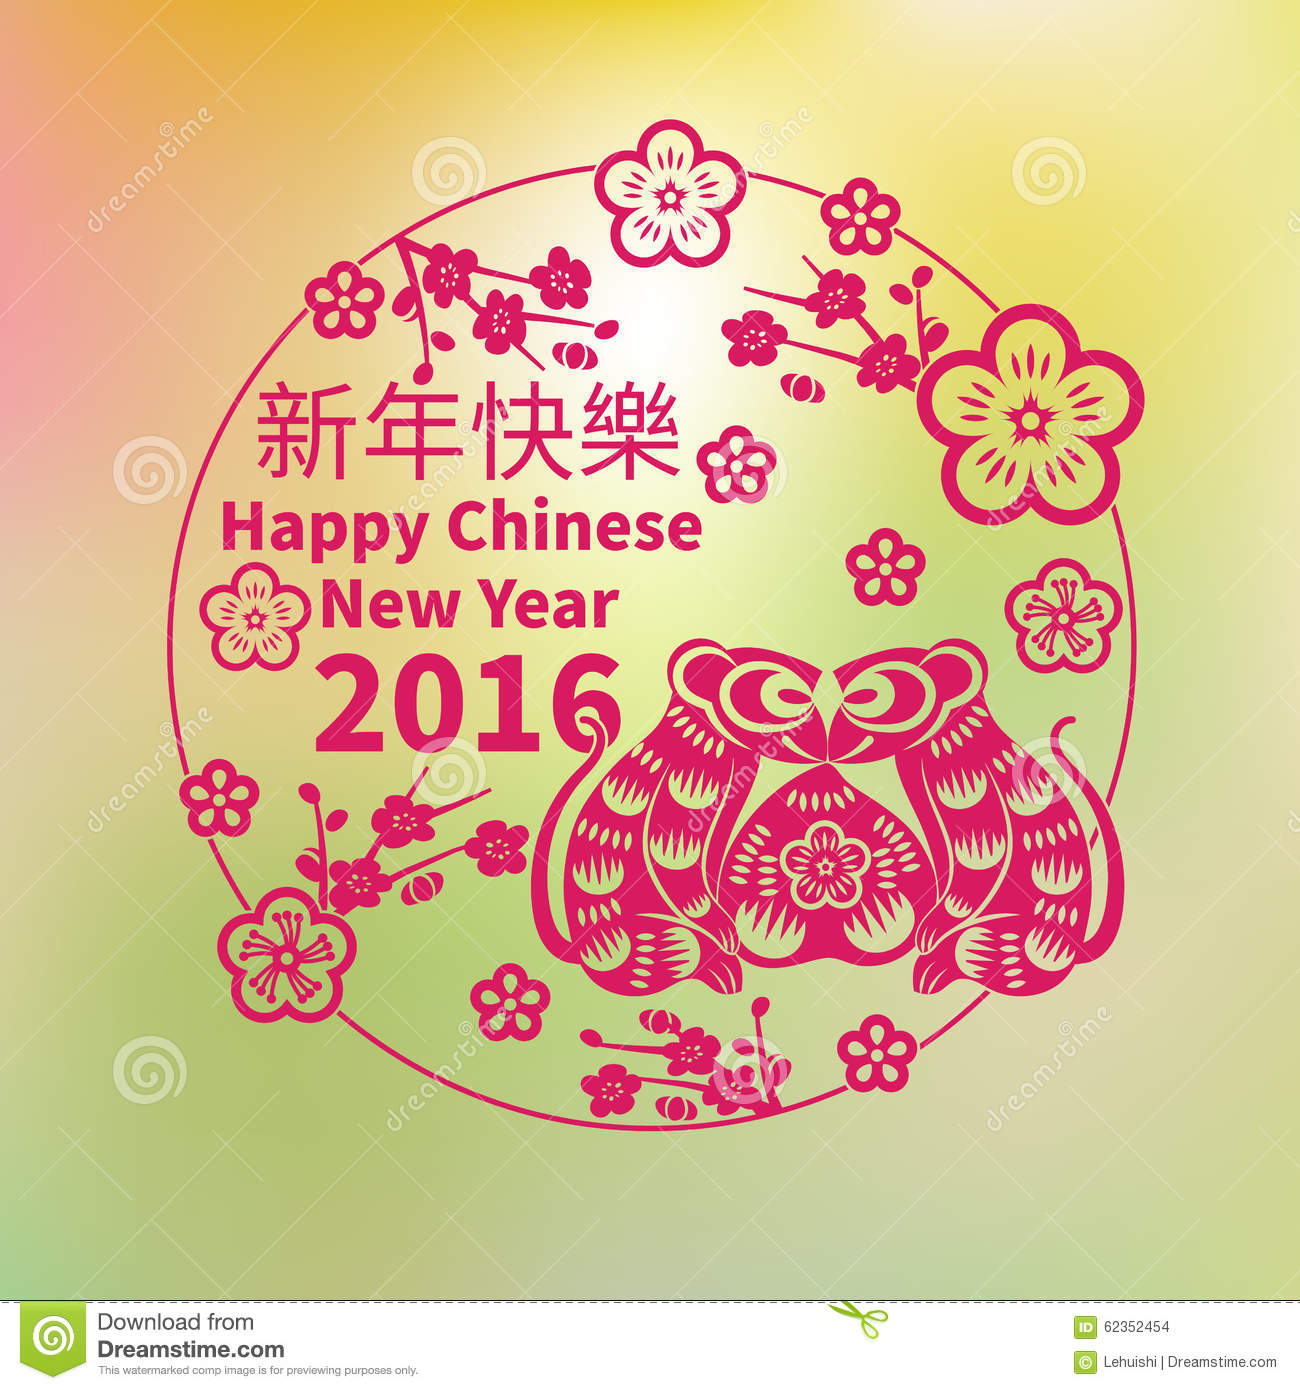 2016 vector chinese new year greeting card background stock vector